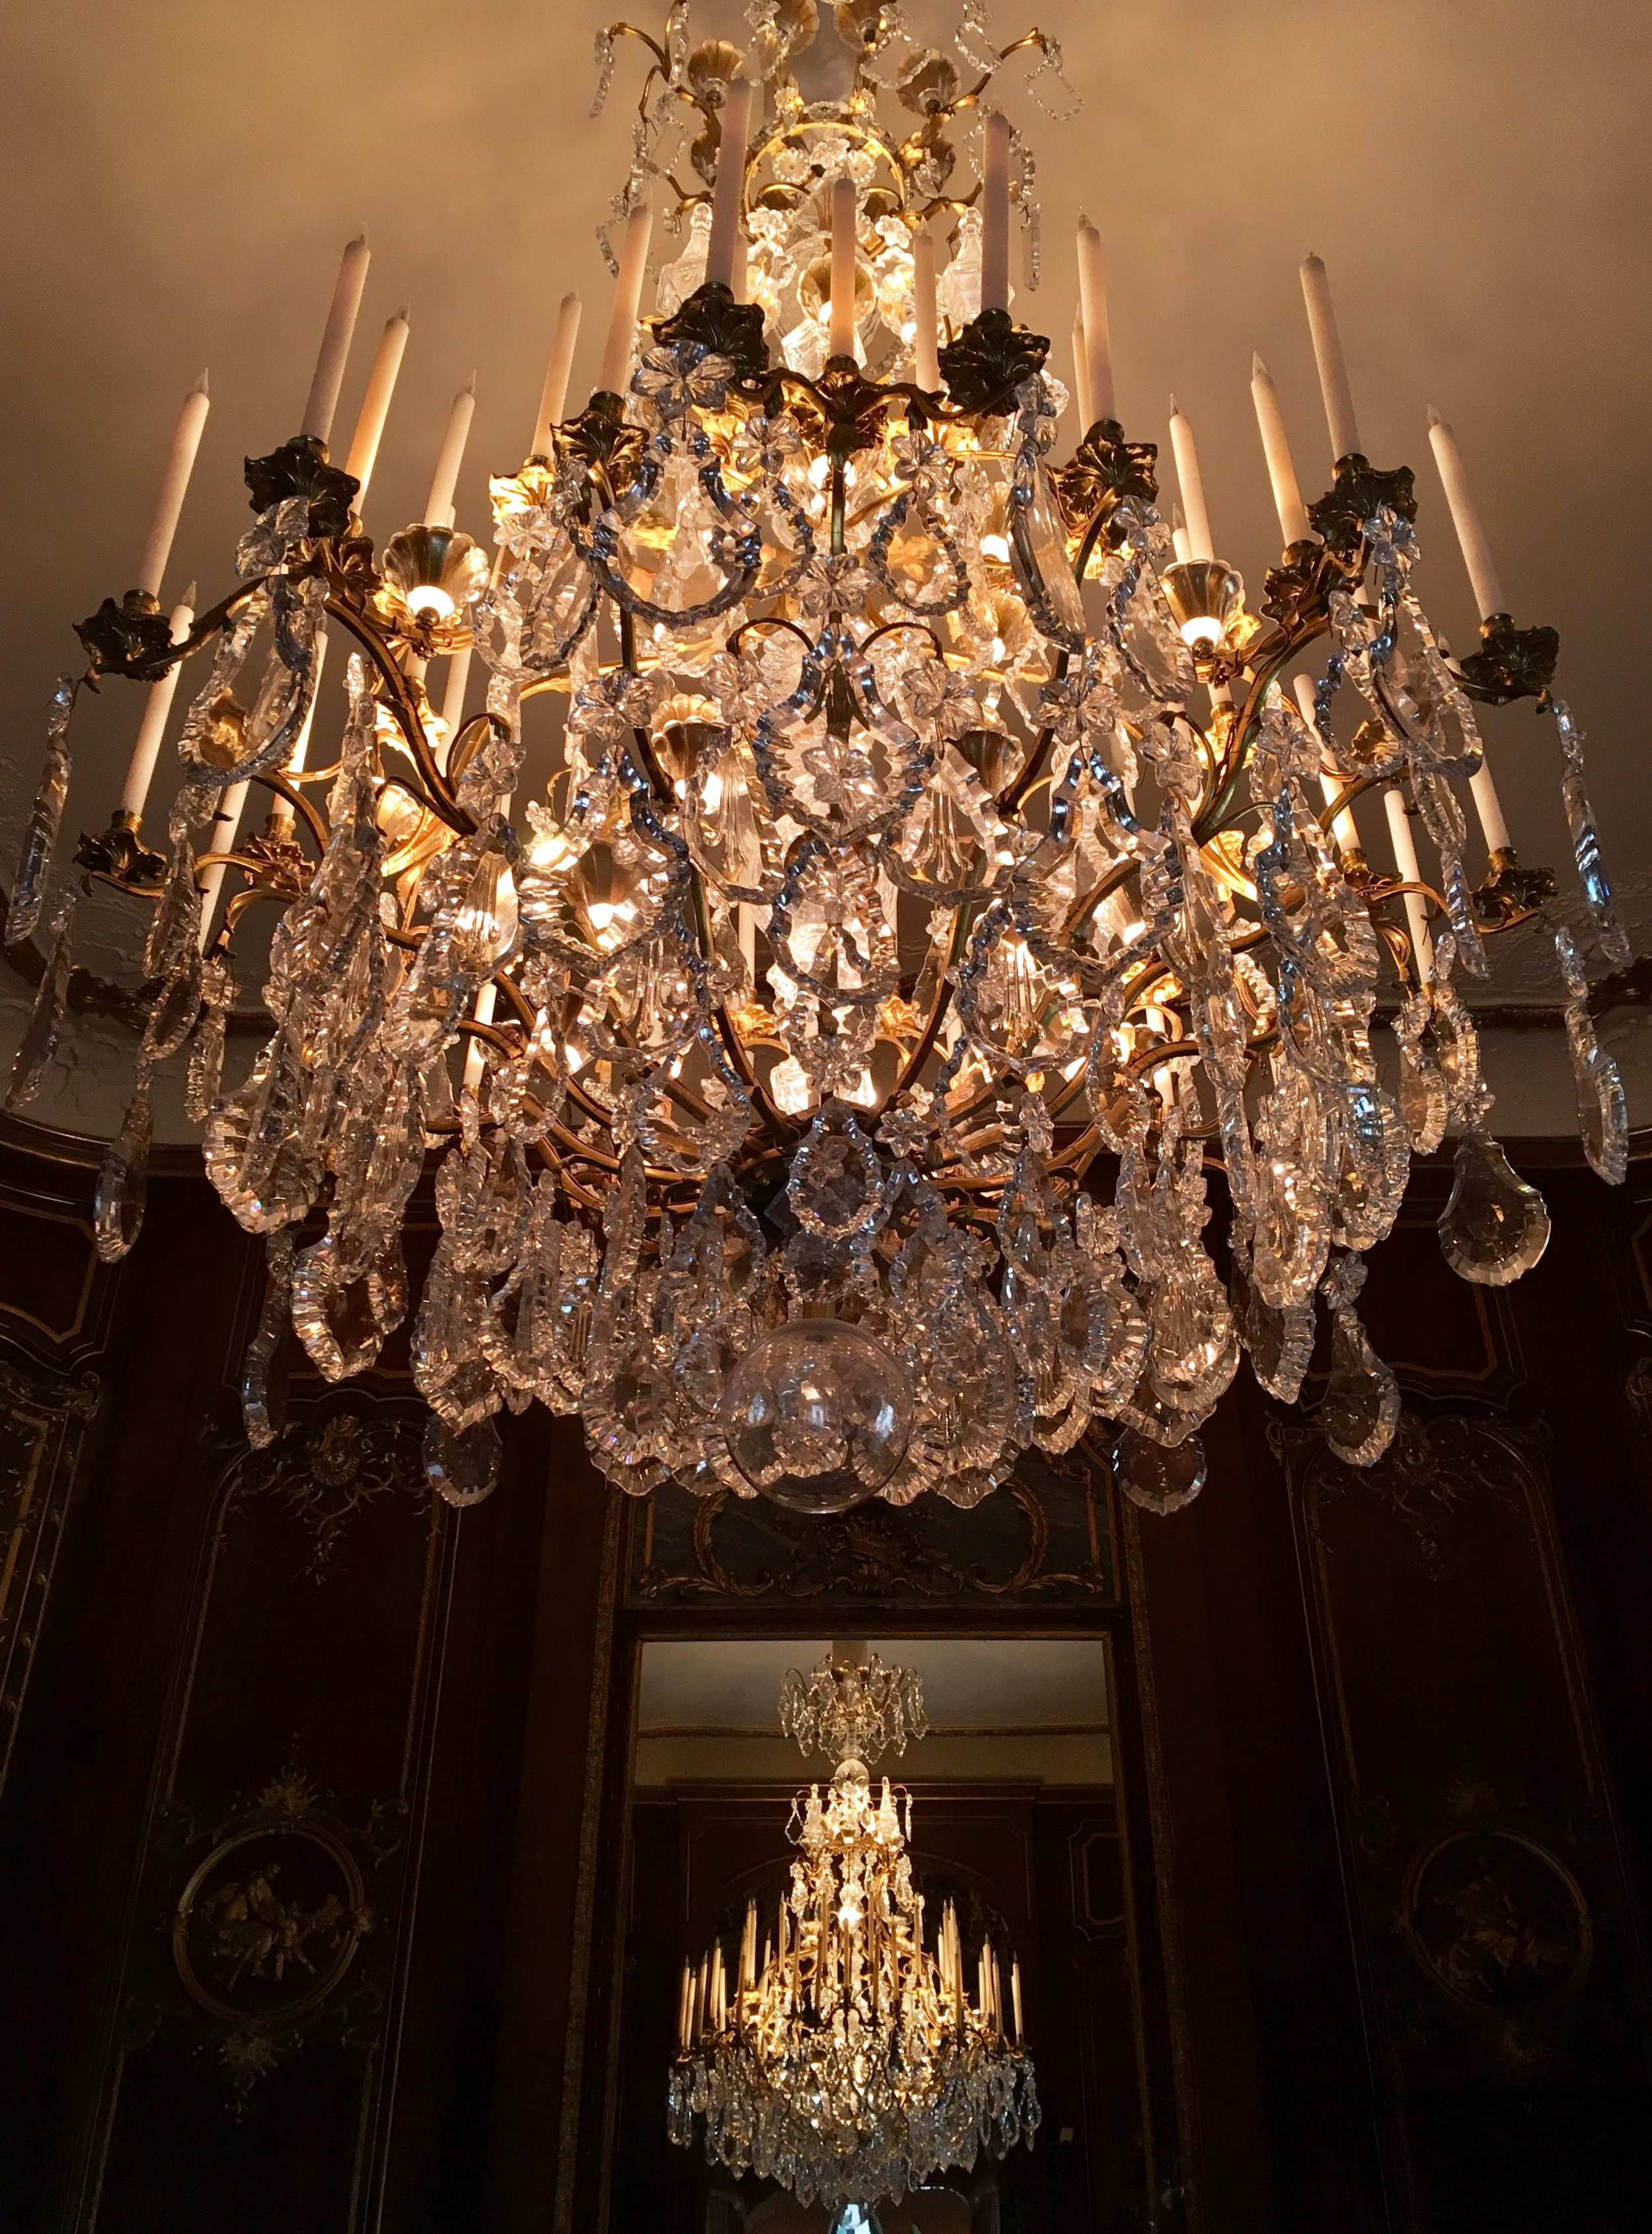 UK Waddesdon Manor chandelier details National Trust French Chateau Rothschild Buckinghamshire garden chateau Eileen Hsieh Follow That Bug .jpg